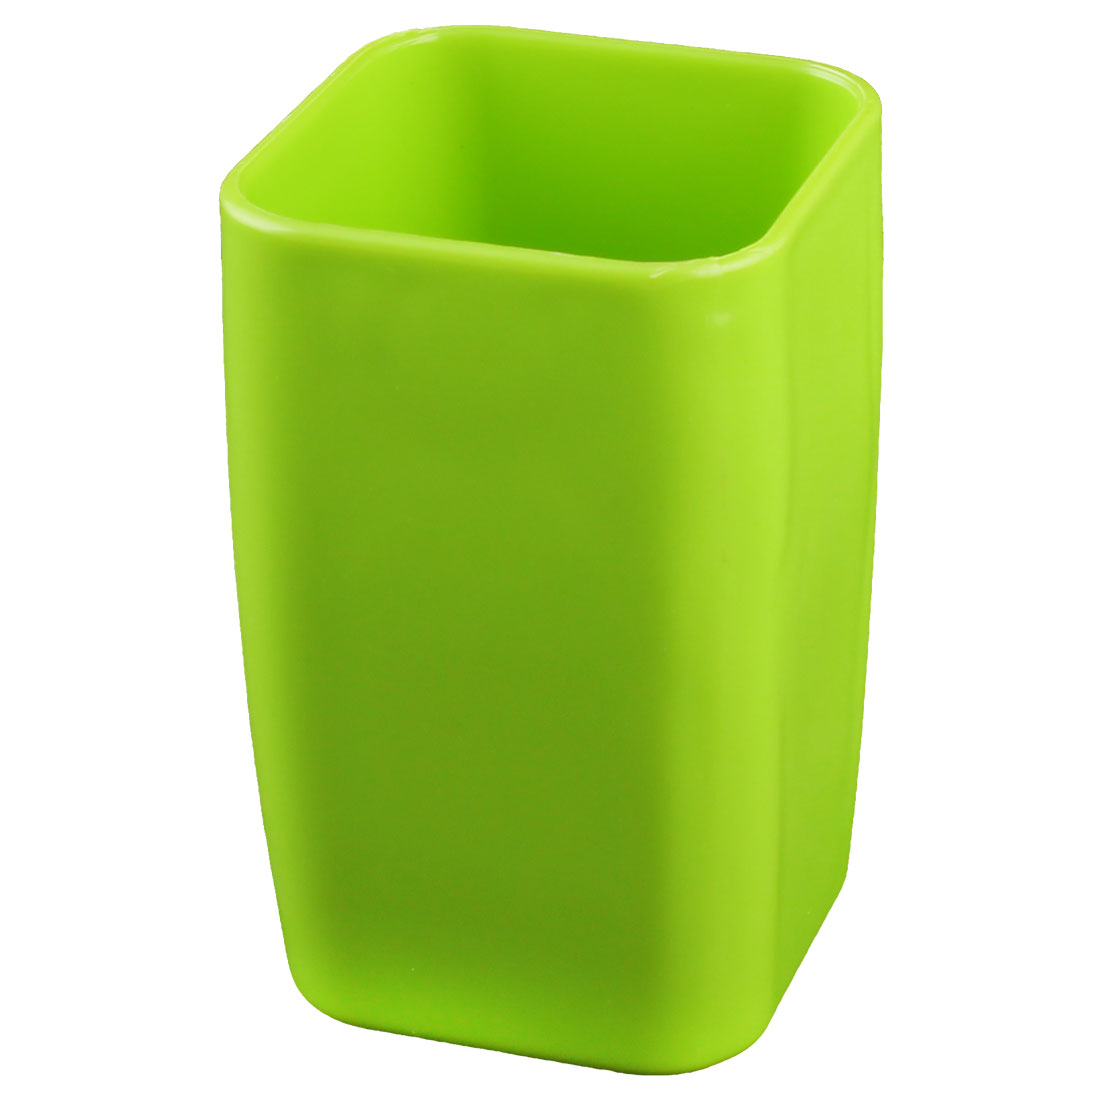 Home Bathroom Plastic Cuboid Shaped Toothbrush Toothpaste Gargle Cup Holder Green 290ml